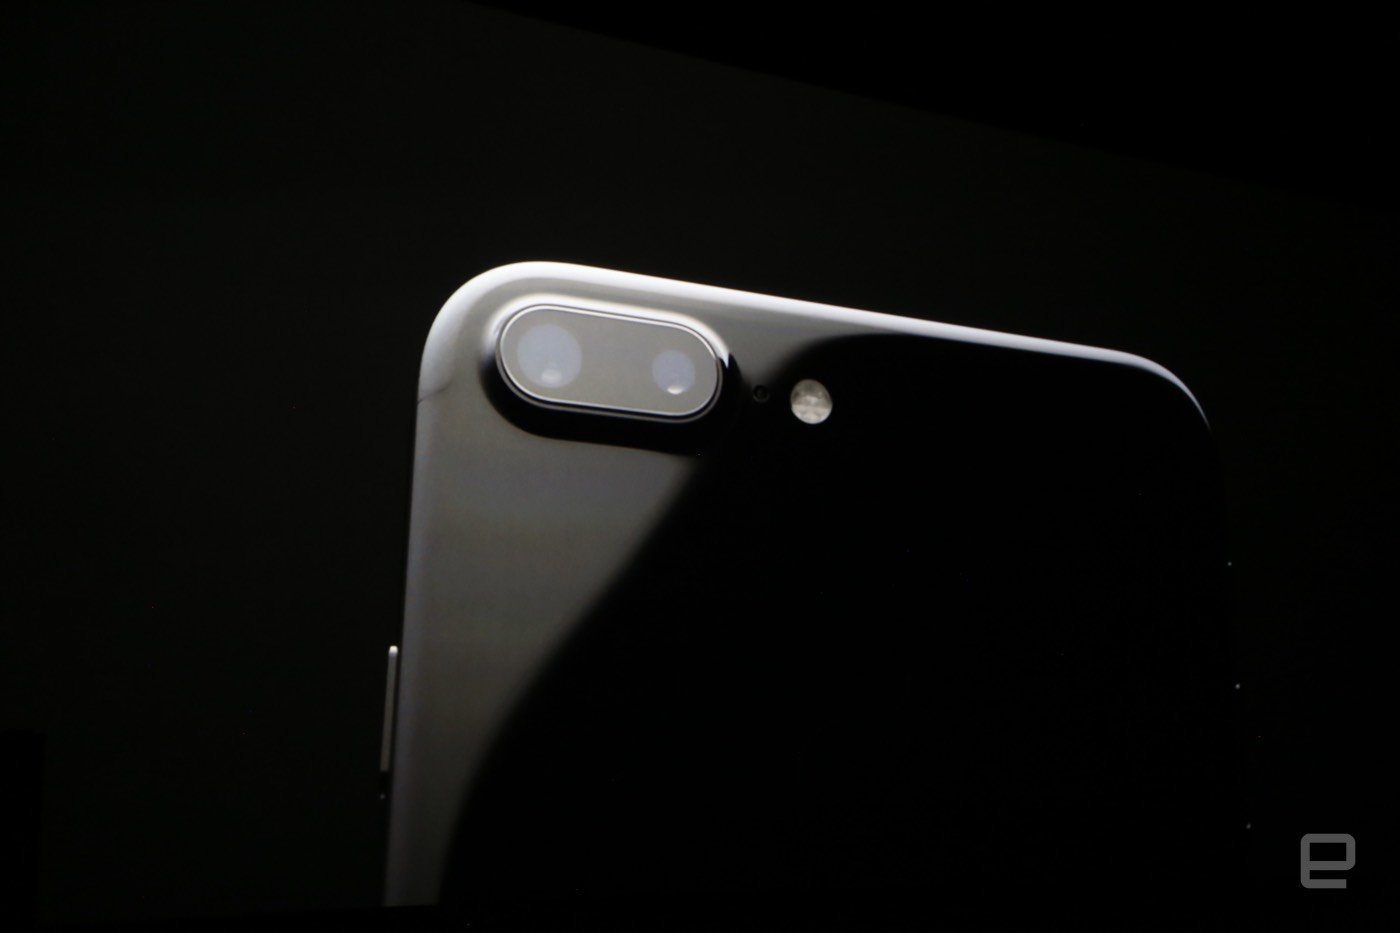 iphone7event-1310.jpg